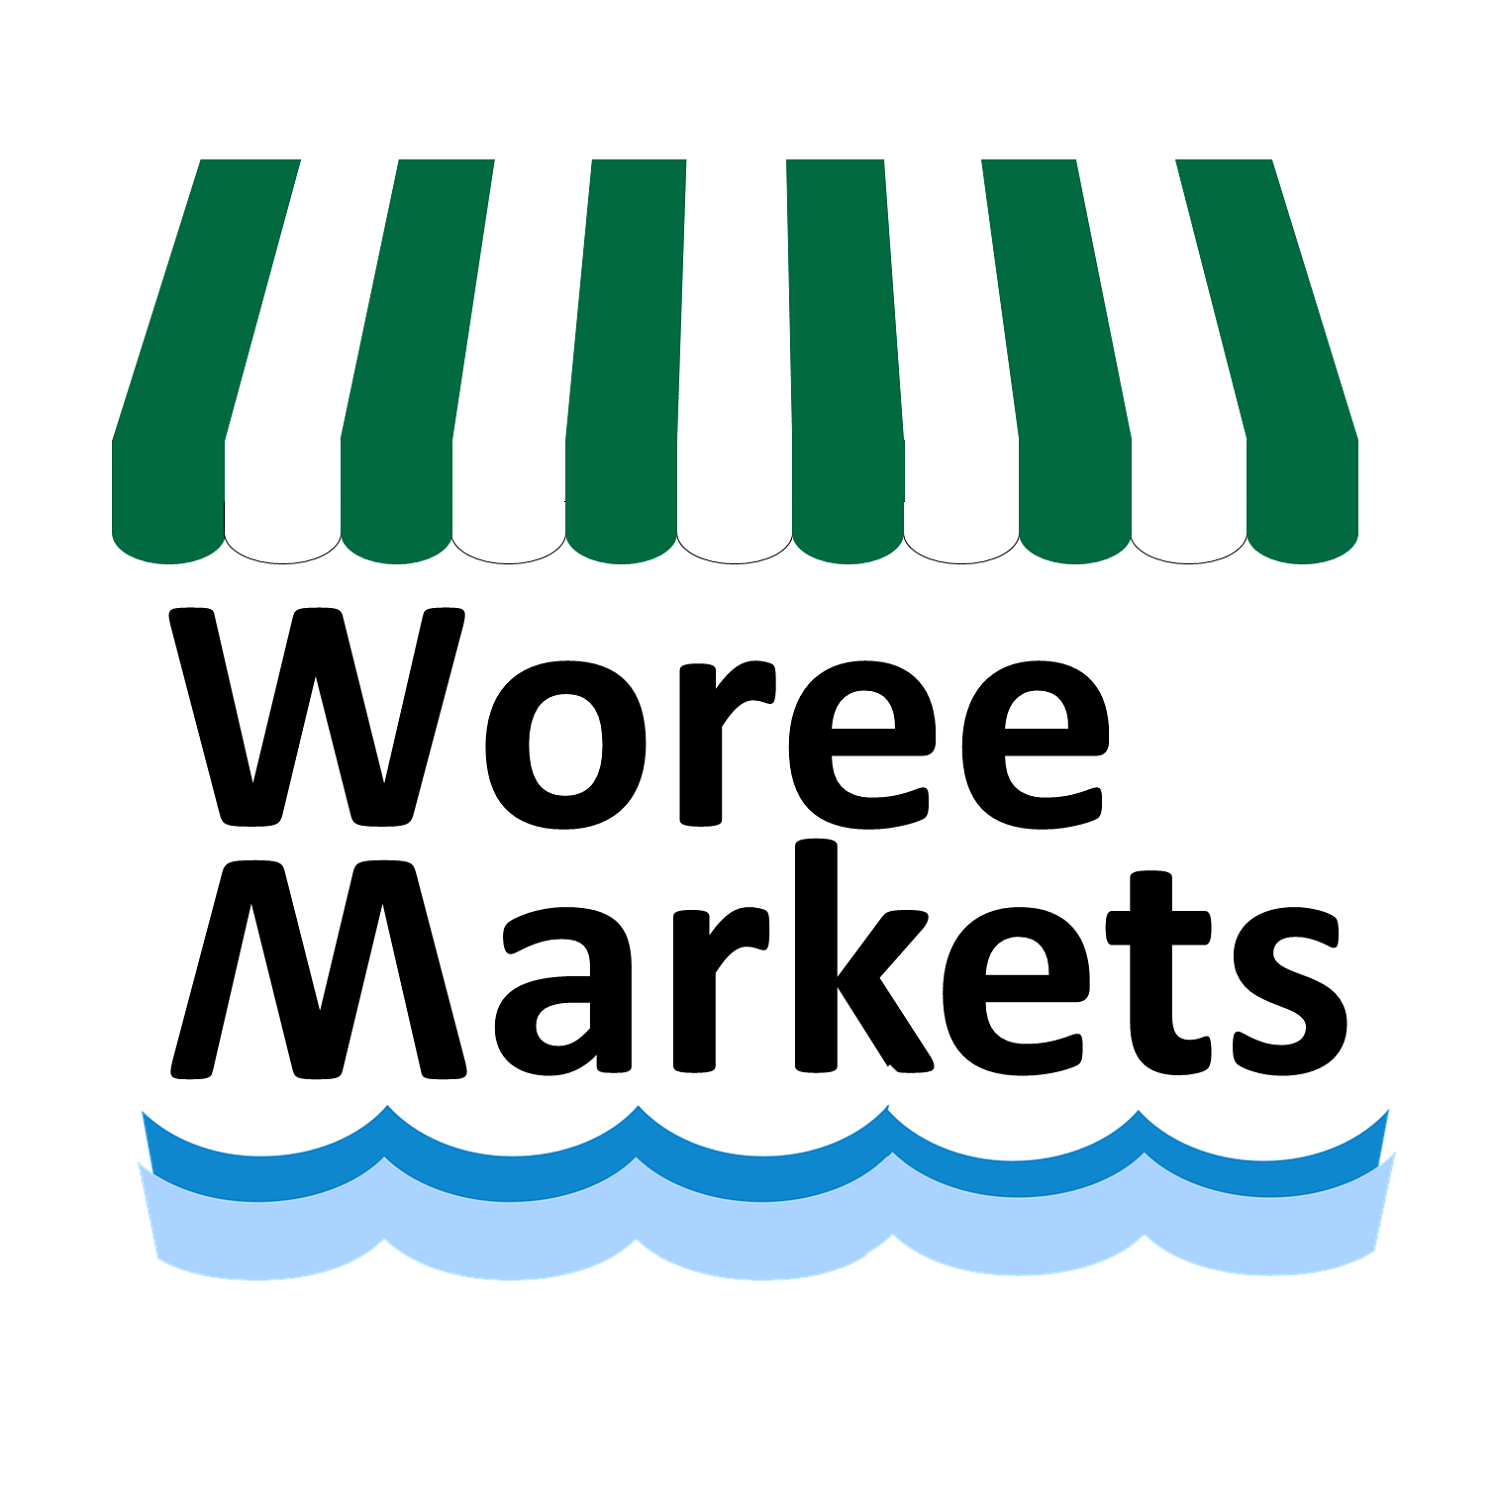 Woree Markets image